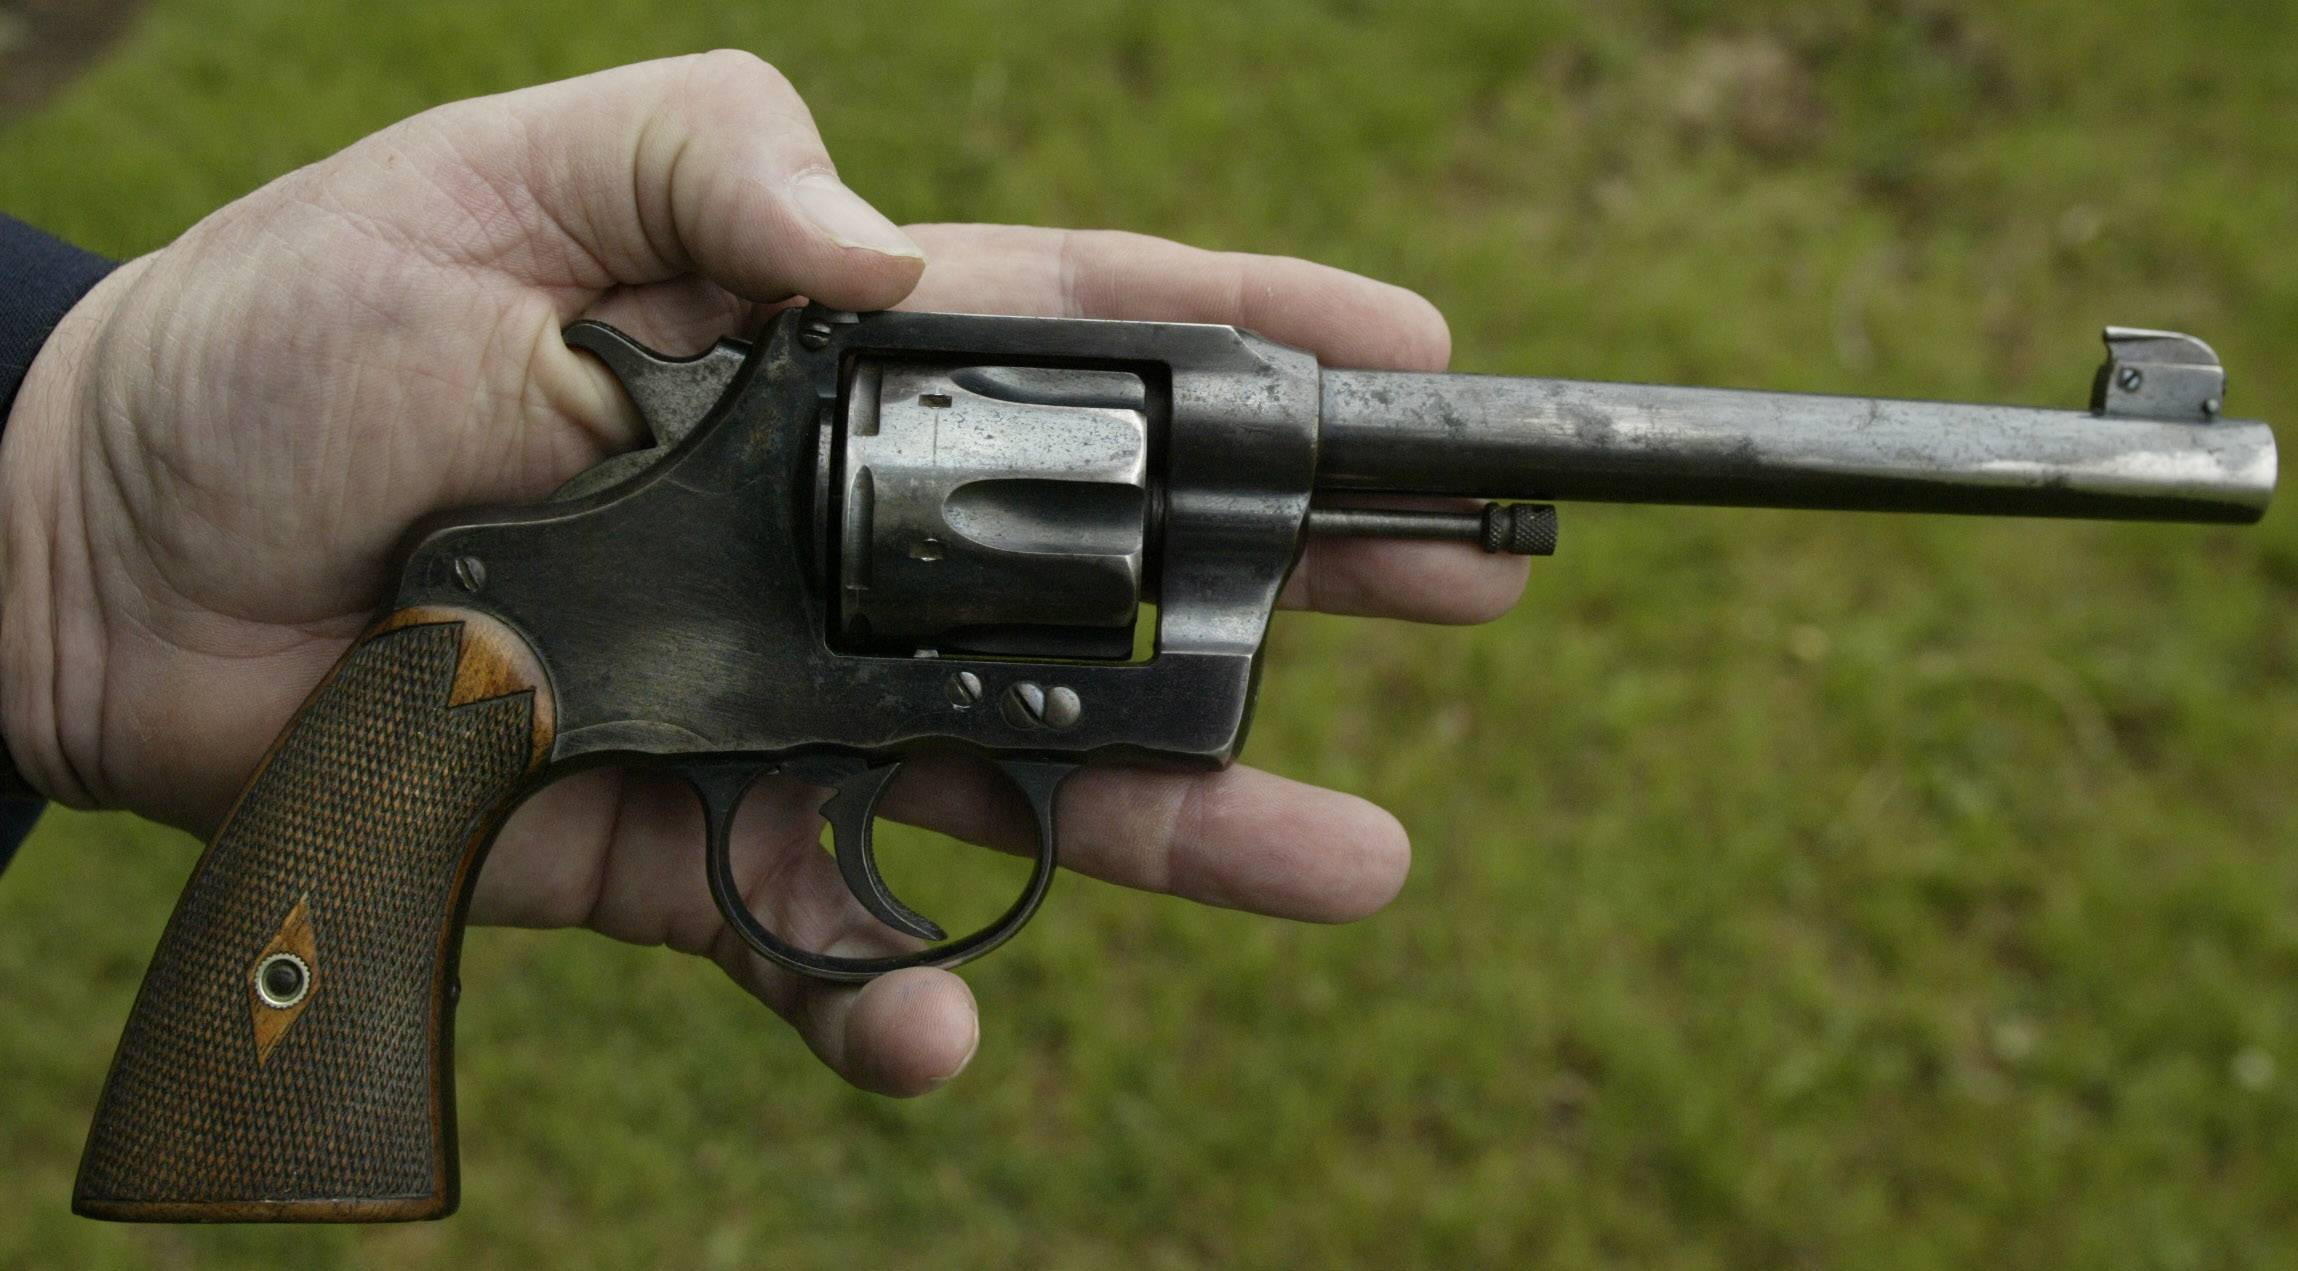 The gun used to murder G. Earle Eldredge and Charles M. Eldredge, 24 years apart.